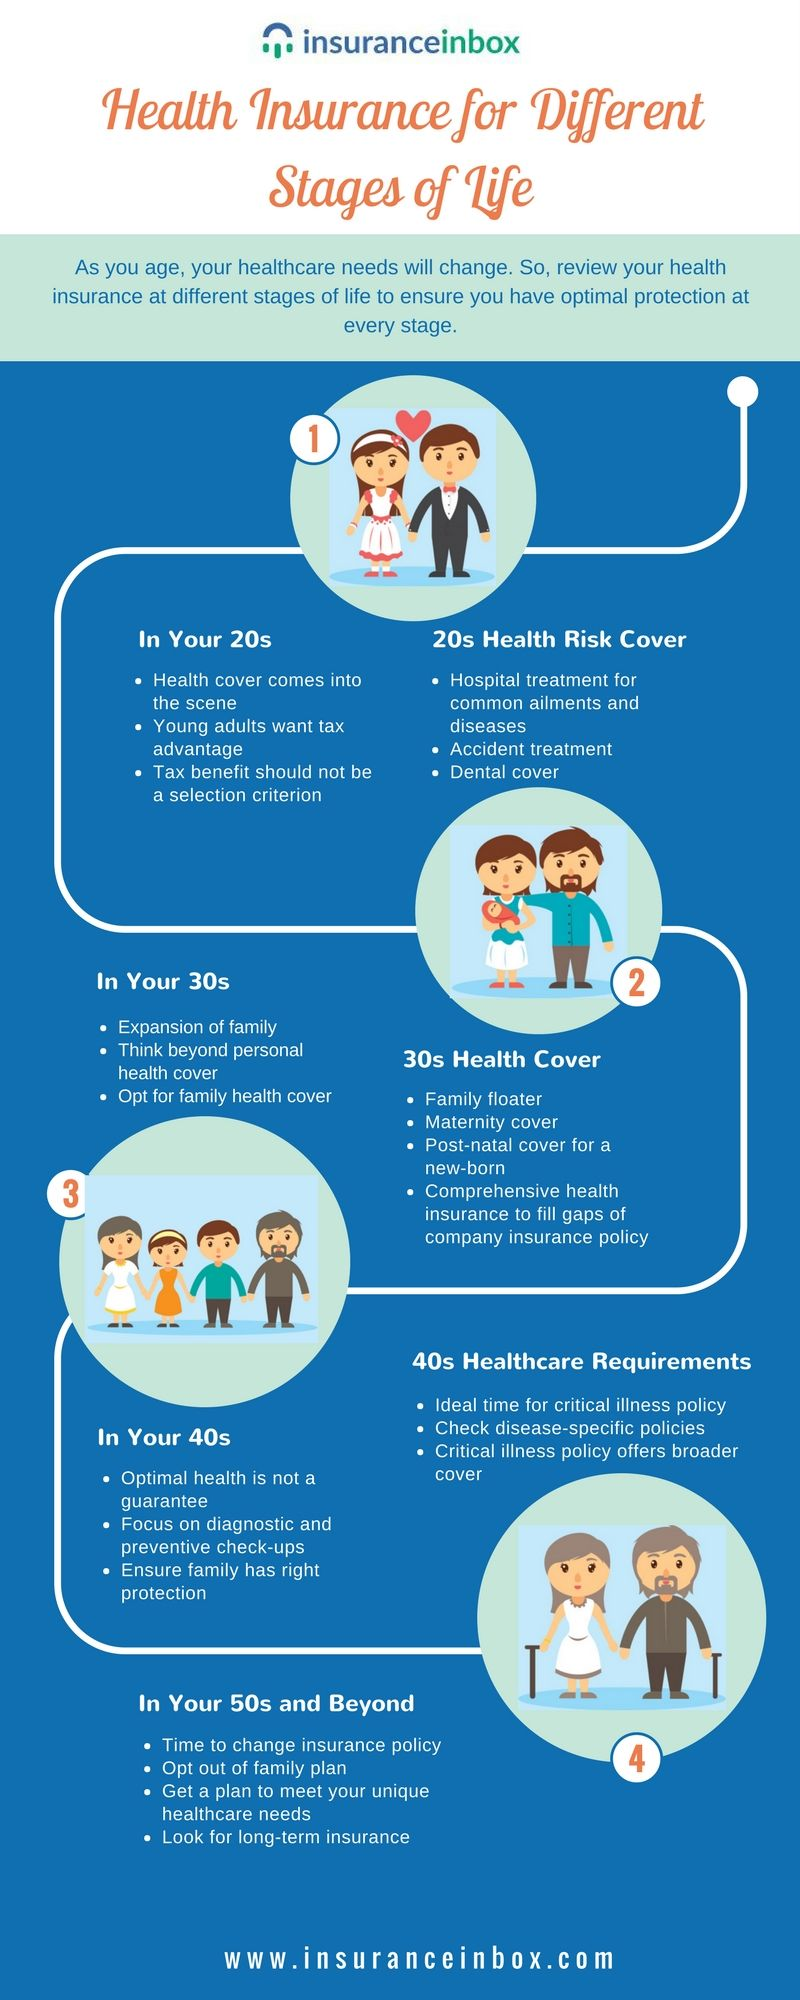 Filing An Insurance Claim With Your Insurance Company Could Be A